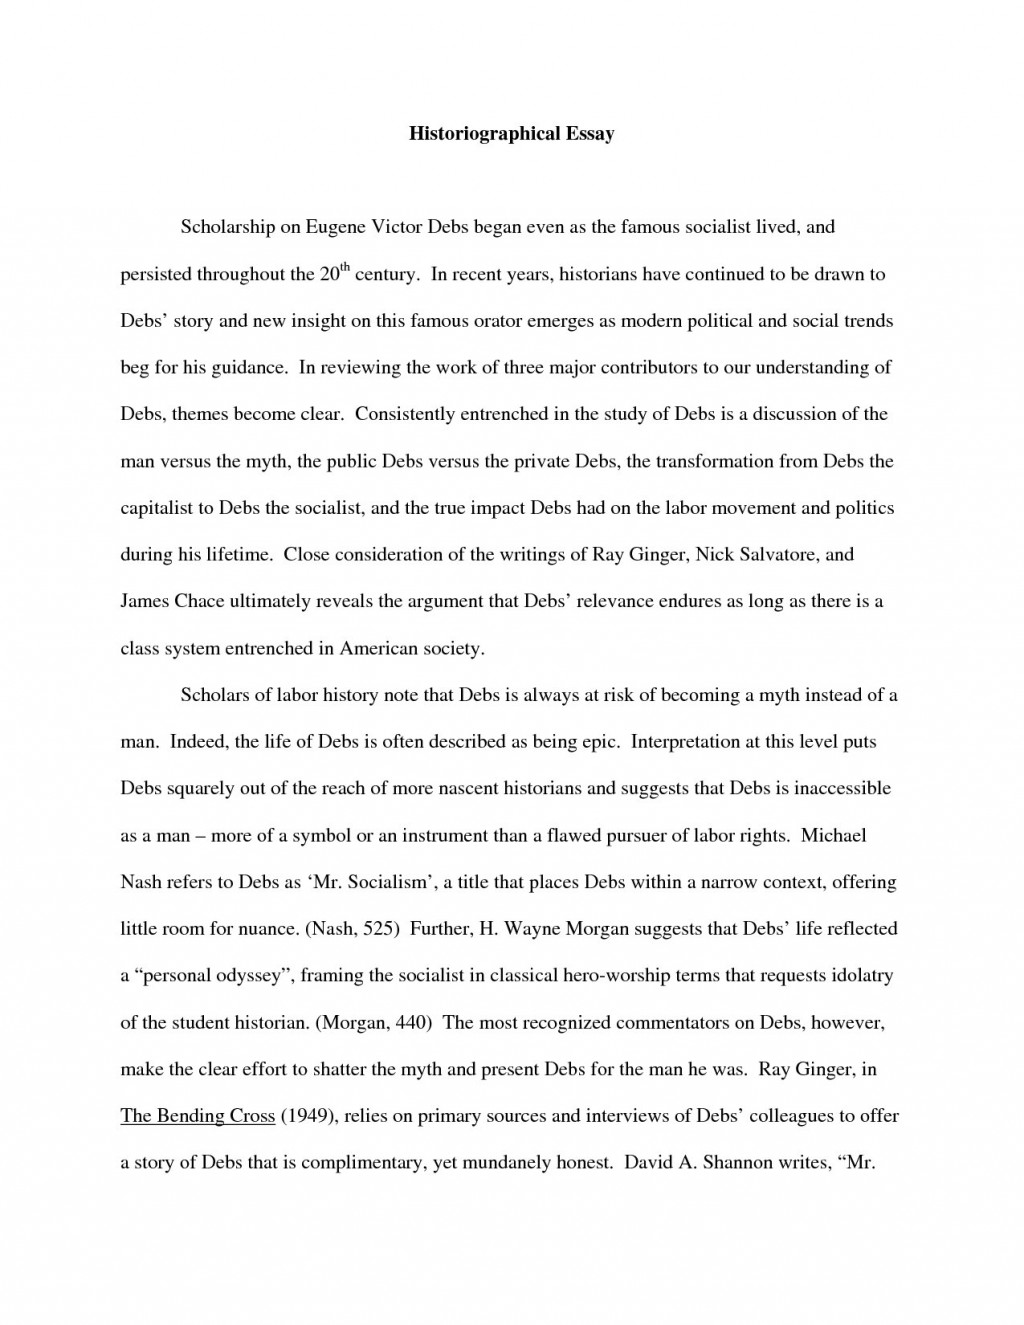 001 Epeiooslsh Essay Example Remarkable Historiographical Sample Historiography Large